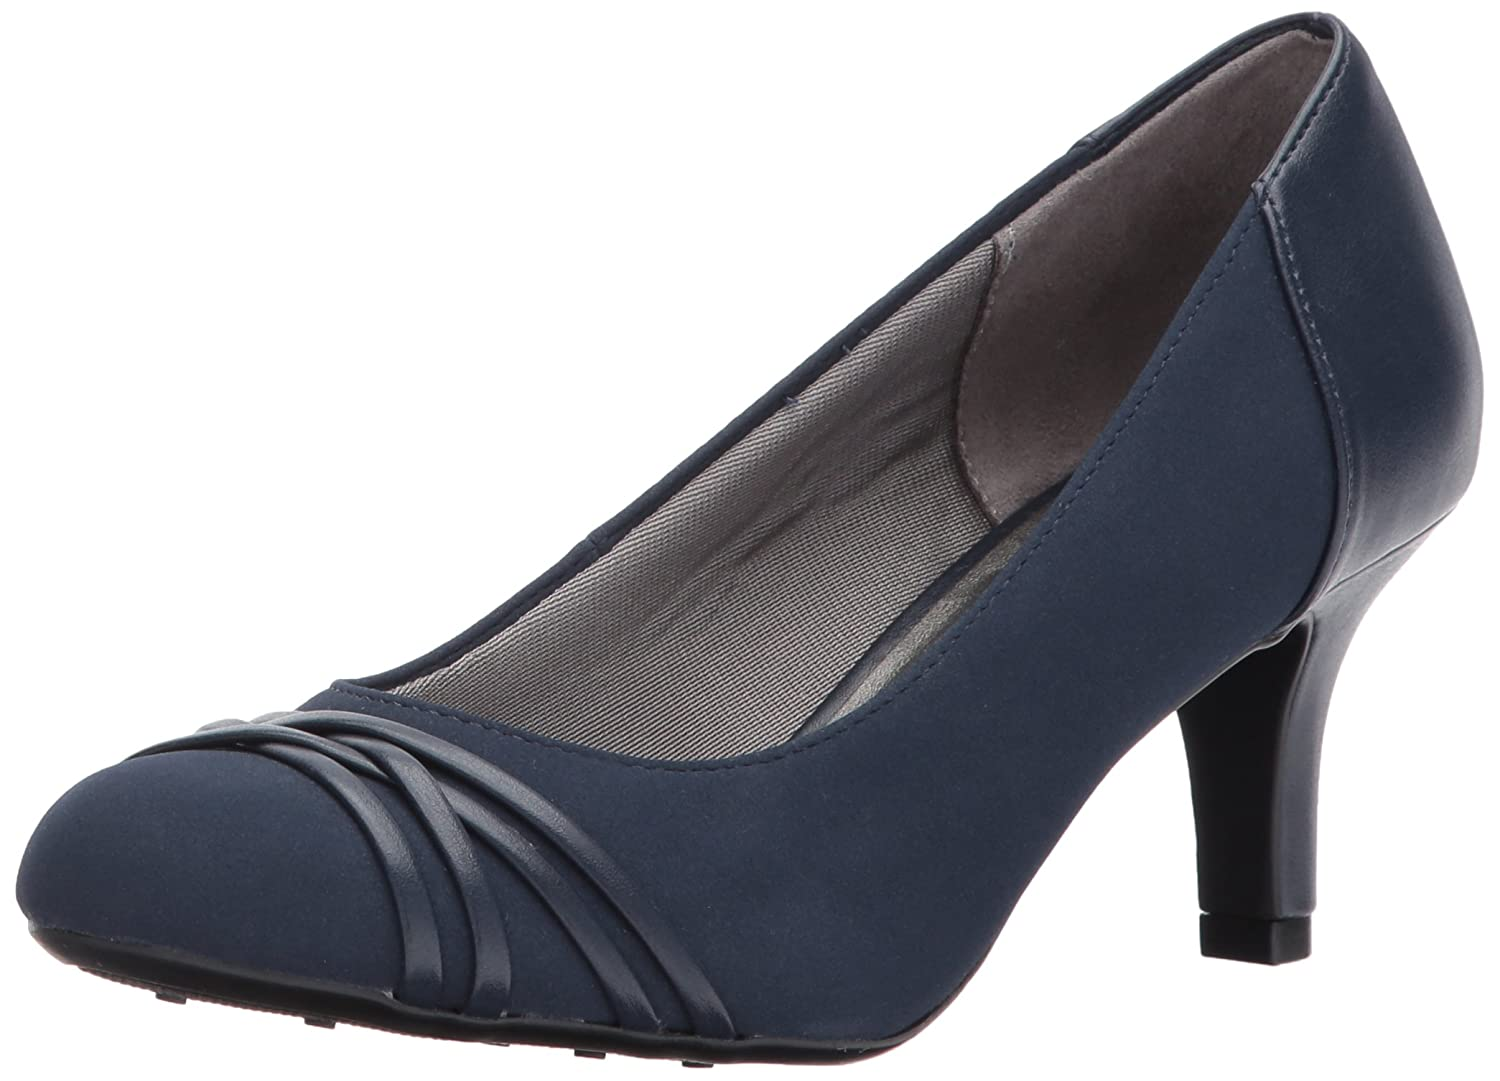 LifeStride B07324R6NM Women's Pascal Dress Pump B07324R6NM LifeStride 9.5 B(M) US|Lux Navy 48728e